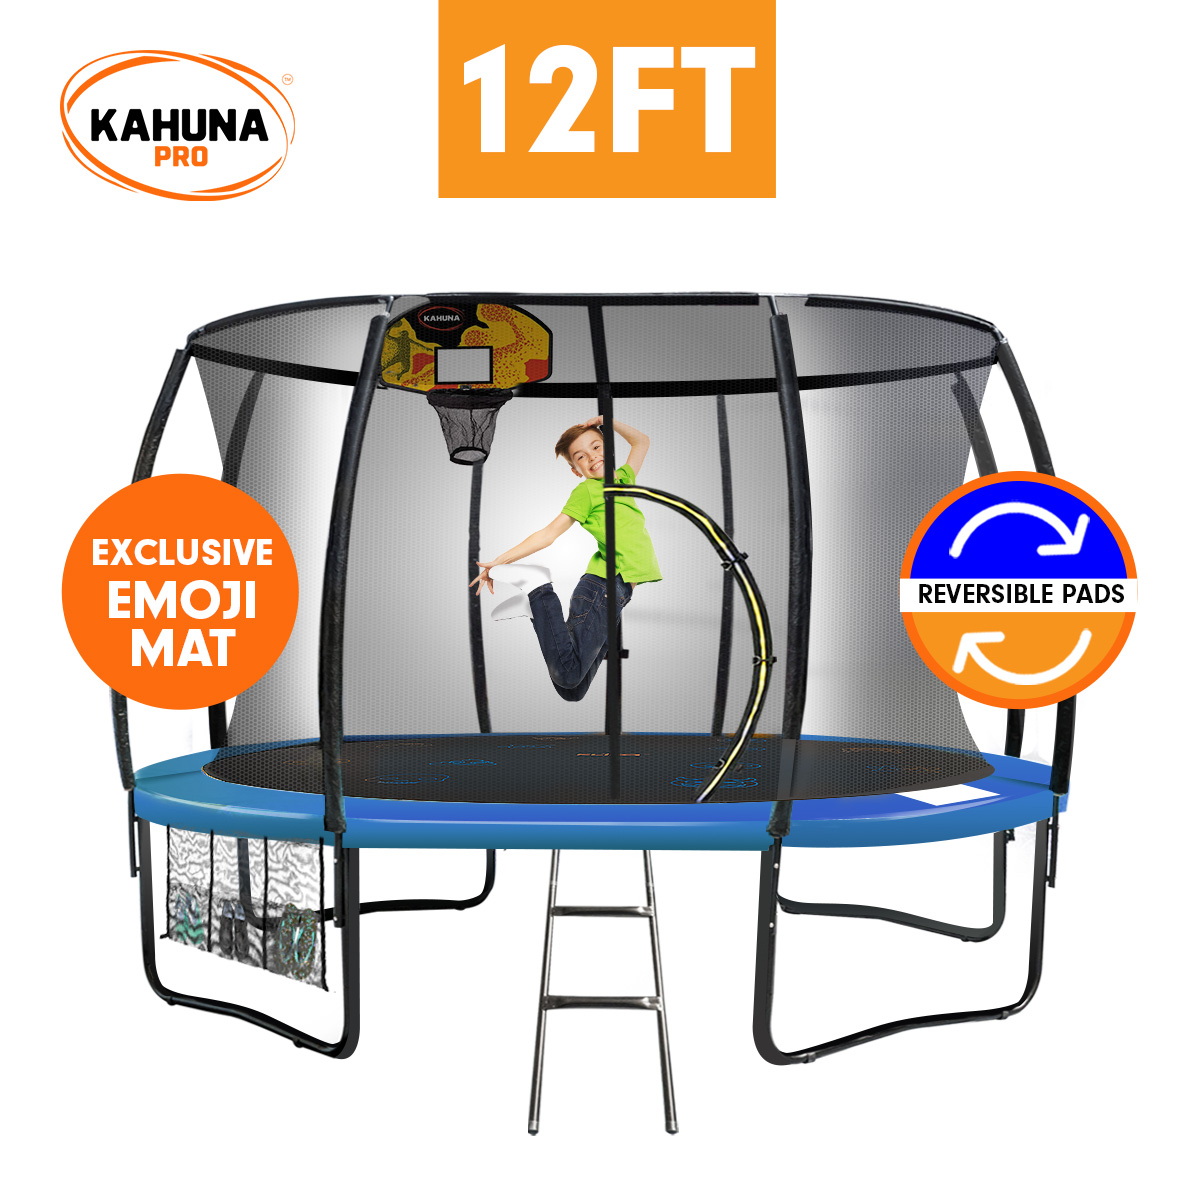 Kahuna Pro 12 ft Trampoline with Emoji Mat Reversible Pad Basketball Set